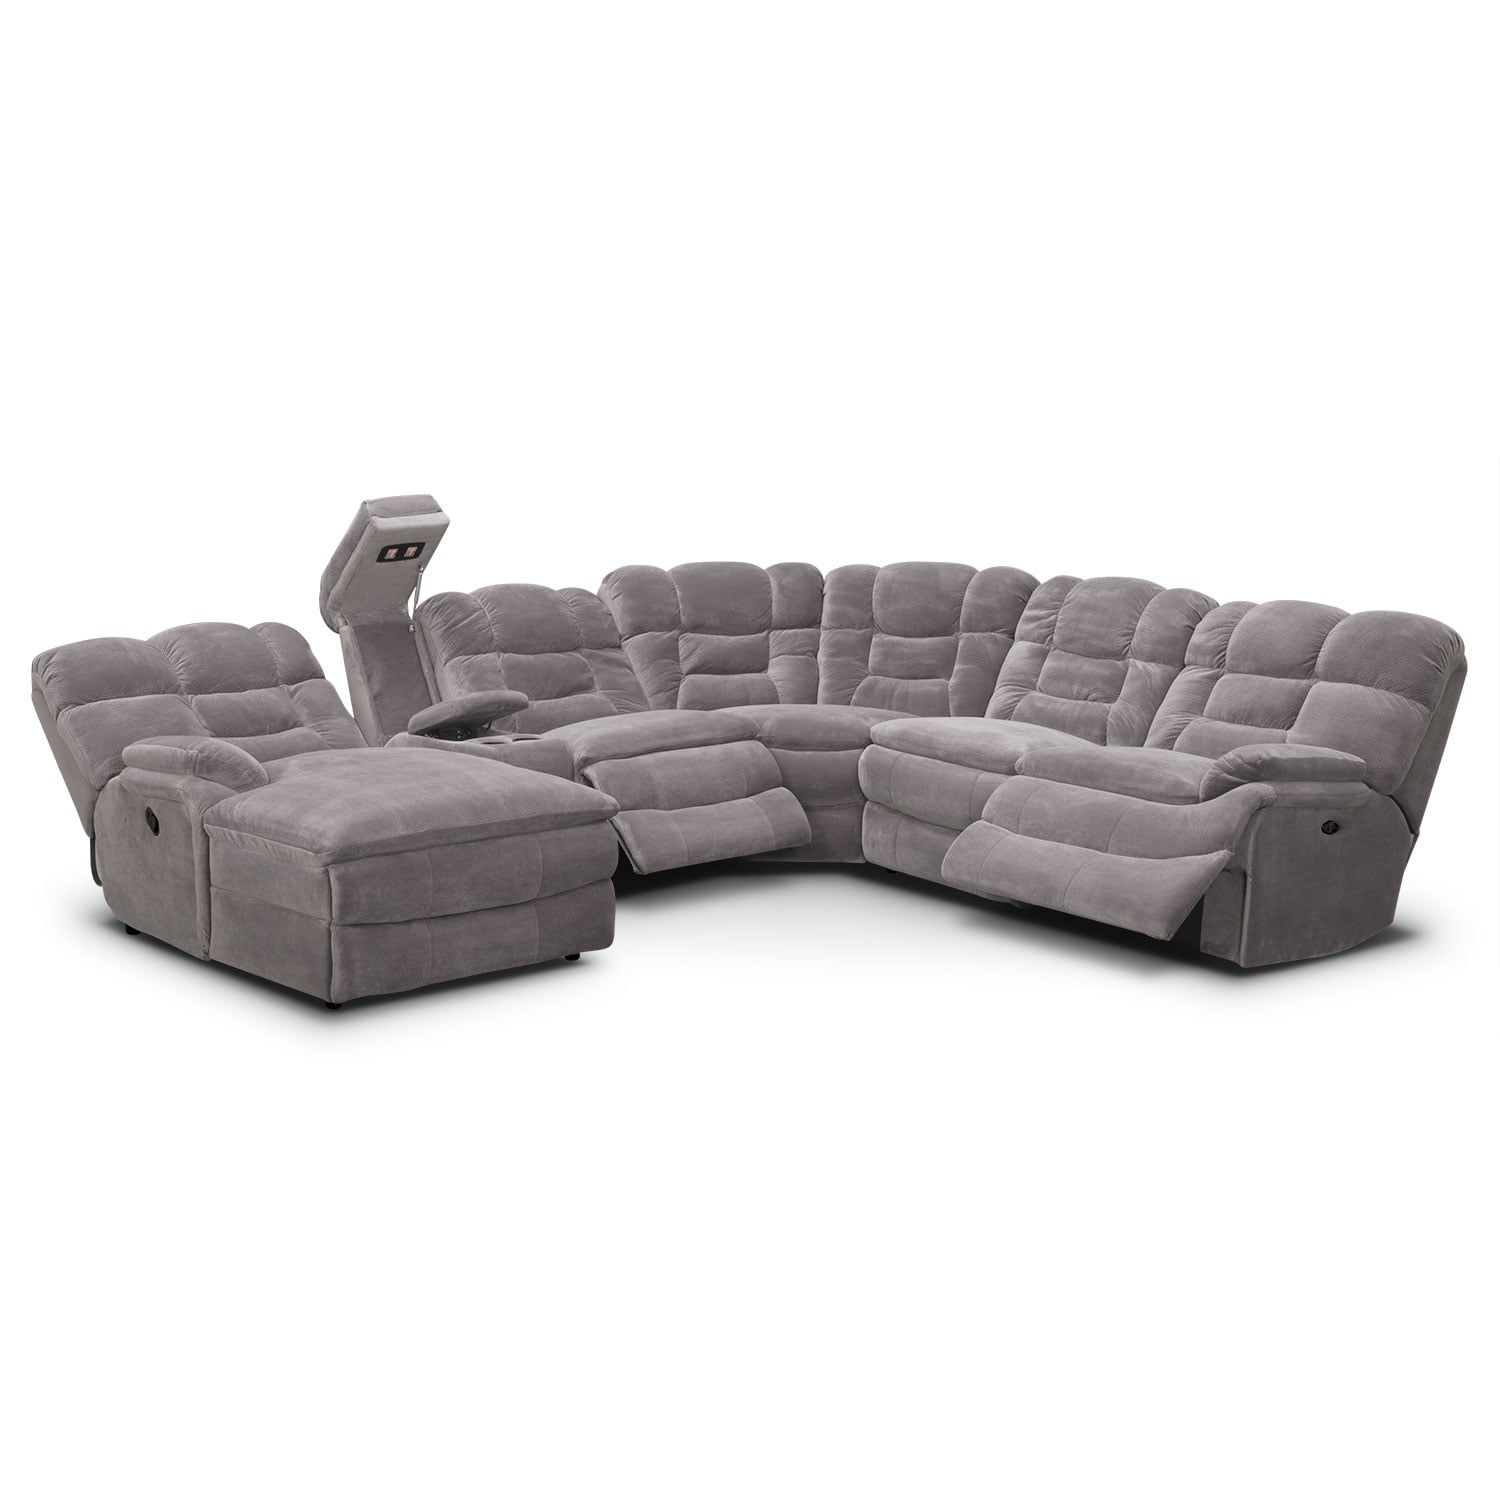 Big softie ii 6 pc power reclining sectional reverse for Sectional sofas with 4 recliners